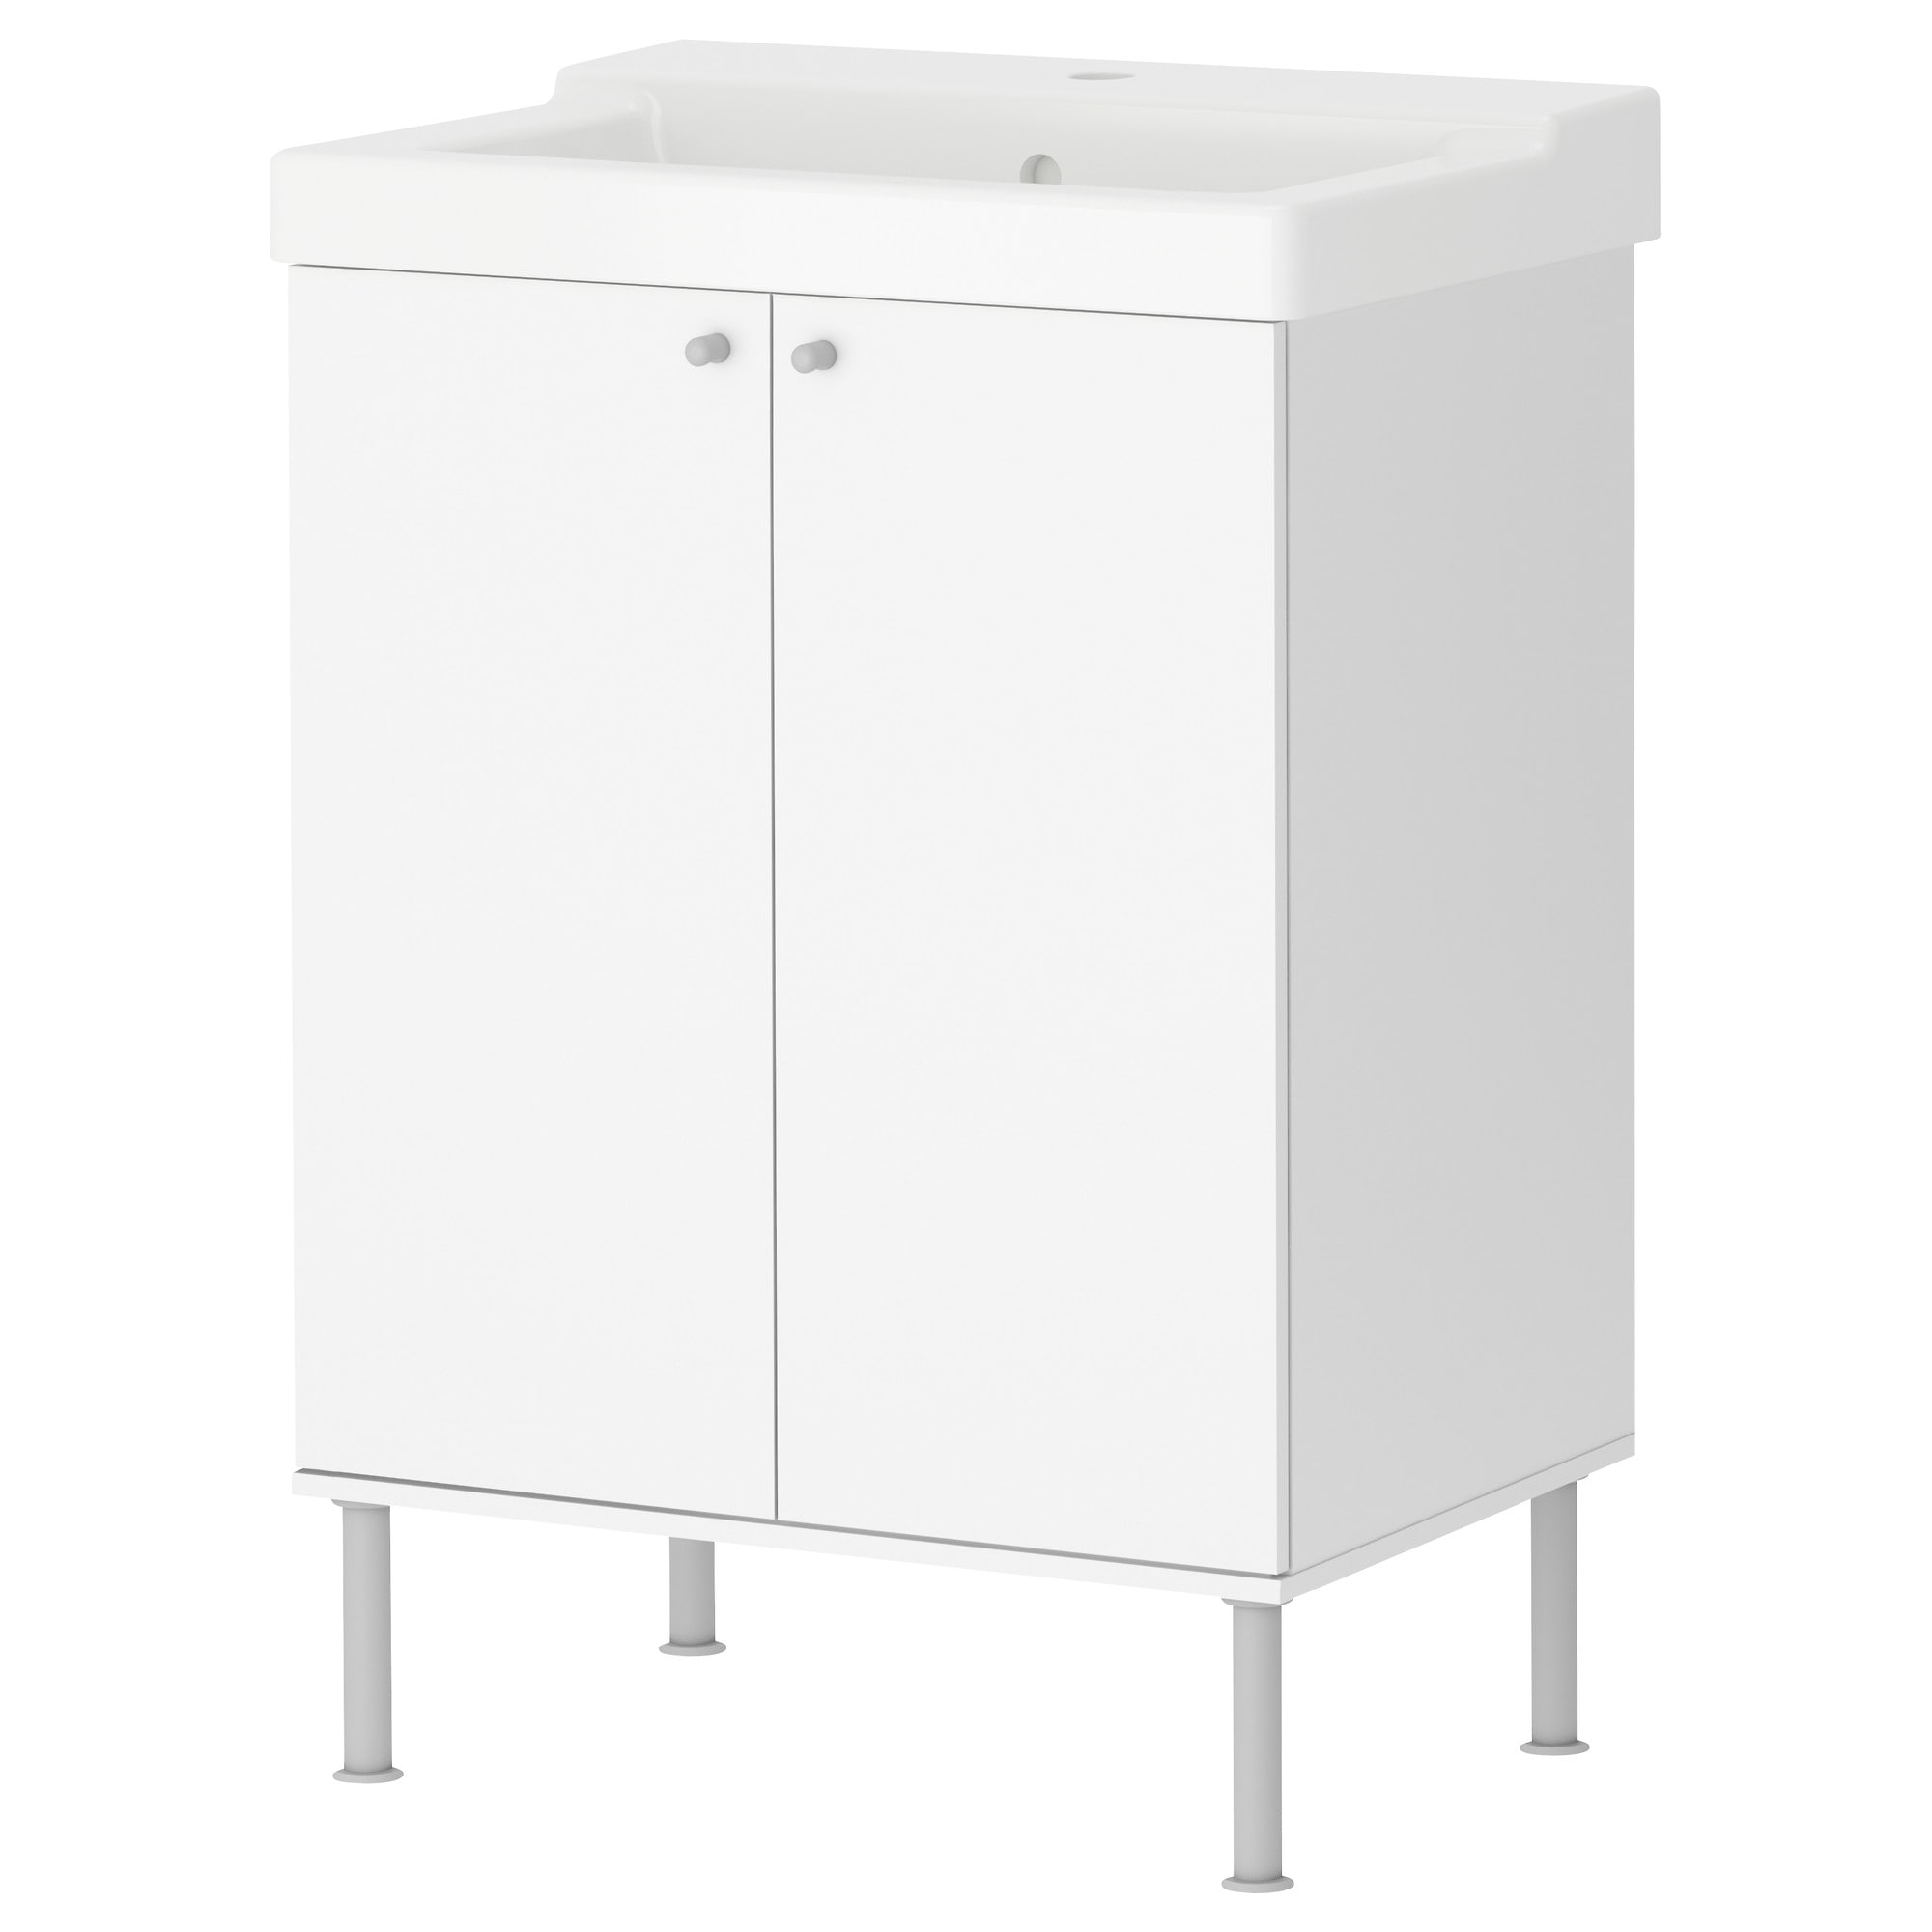 Sink Cabinets - Bathroom - IKEA